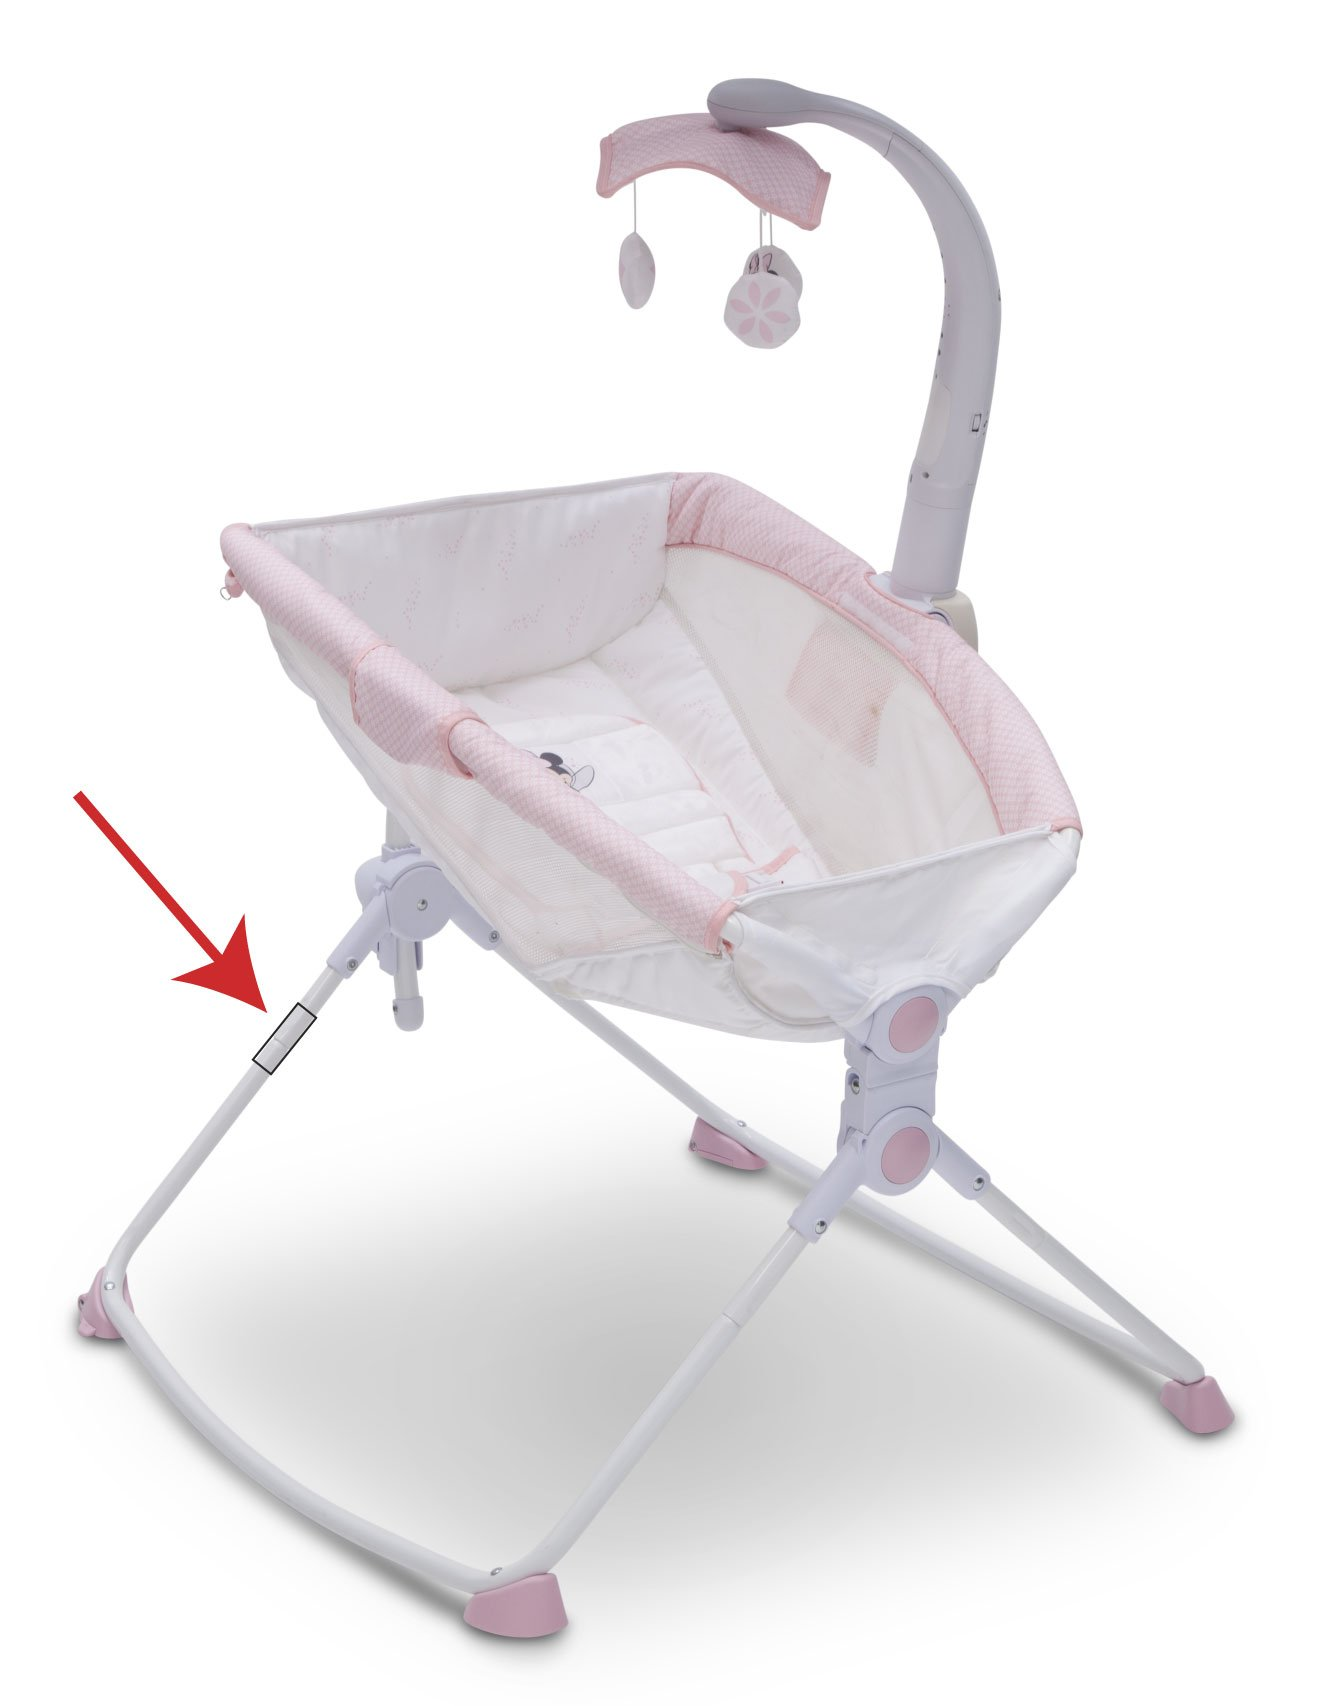 Delta Incline Sleeper with Adjustable Feeding Position for Newborns (This photo is a representative image. Your Incline Sleeper may look different.)